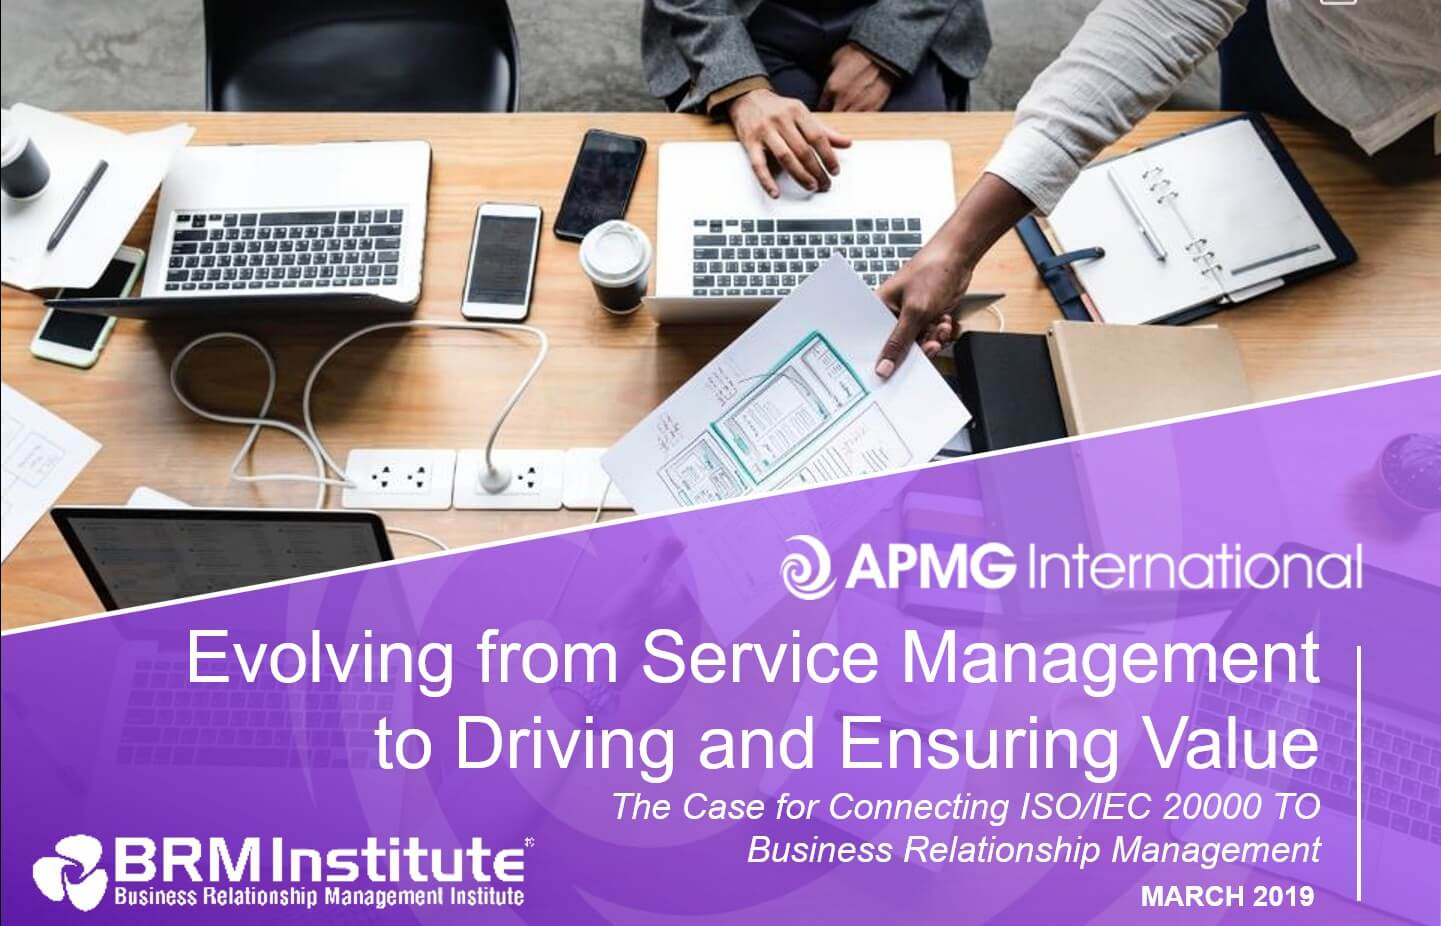 Evolving from Service Management to Driving and Ensuring Value